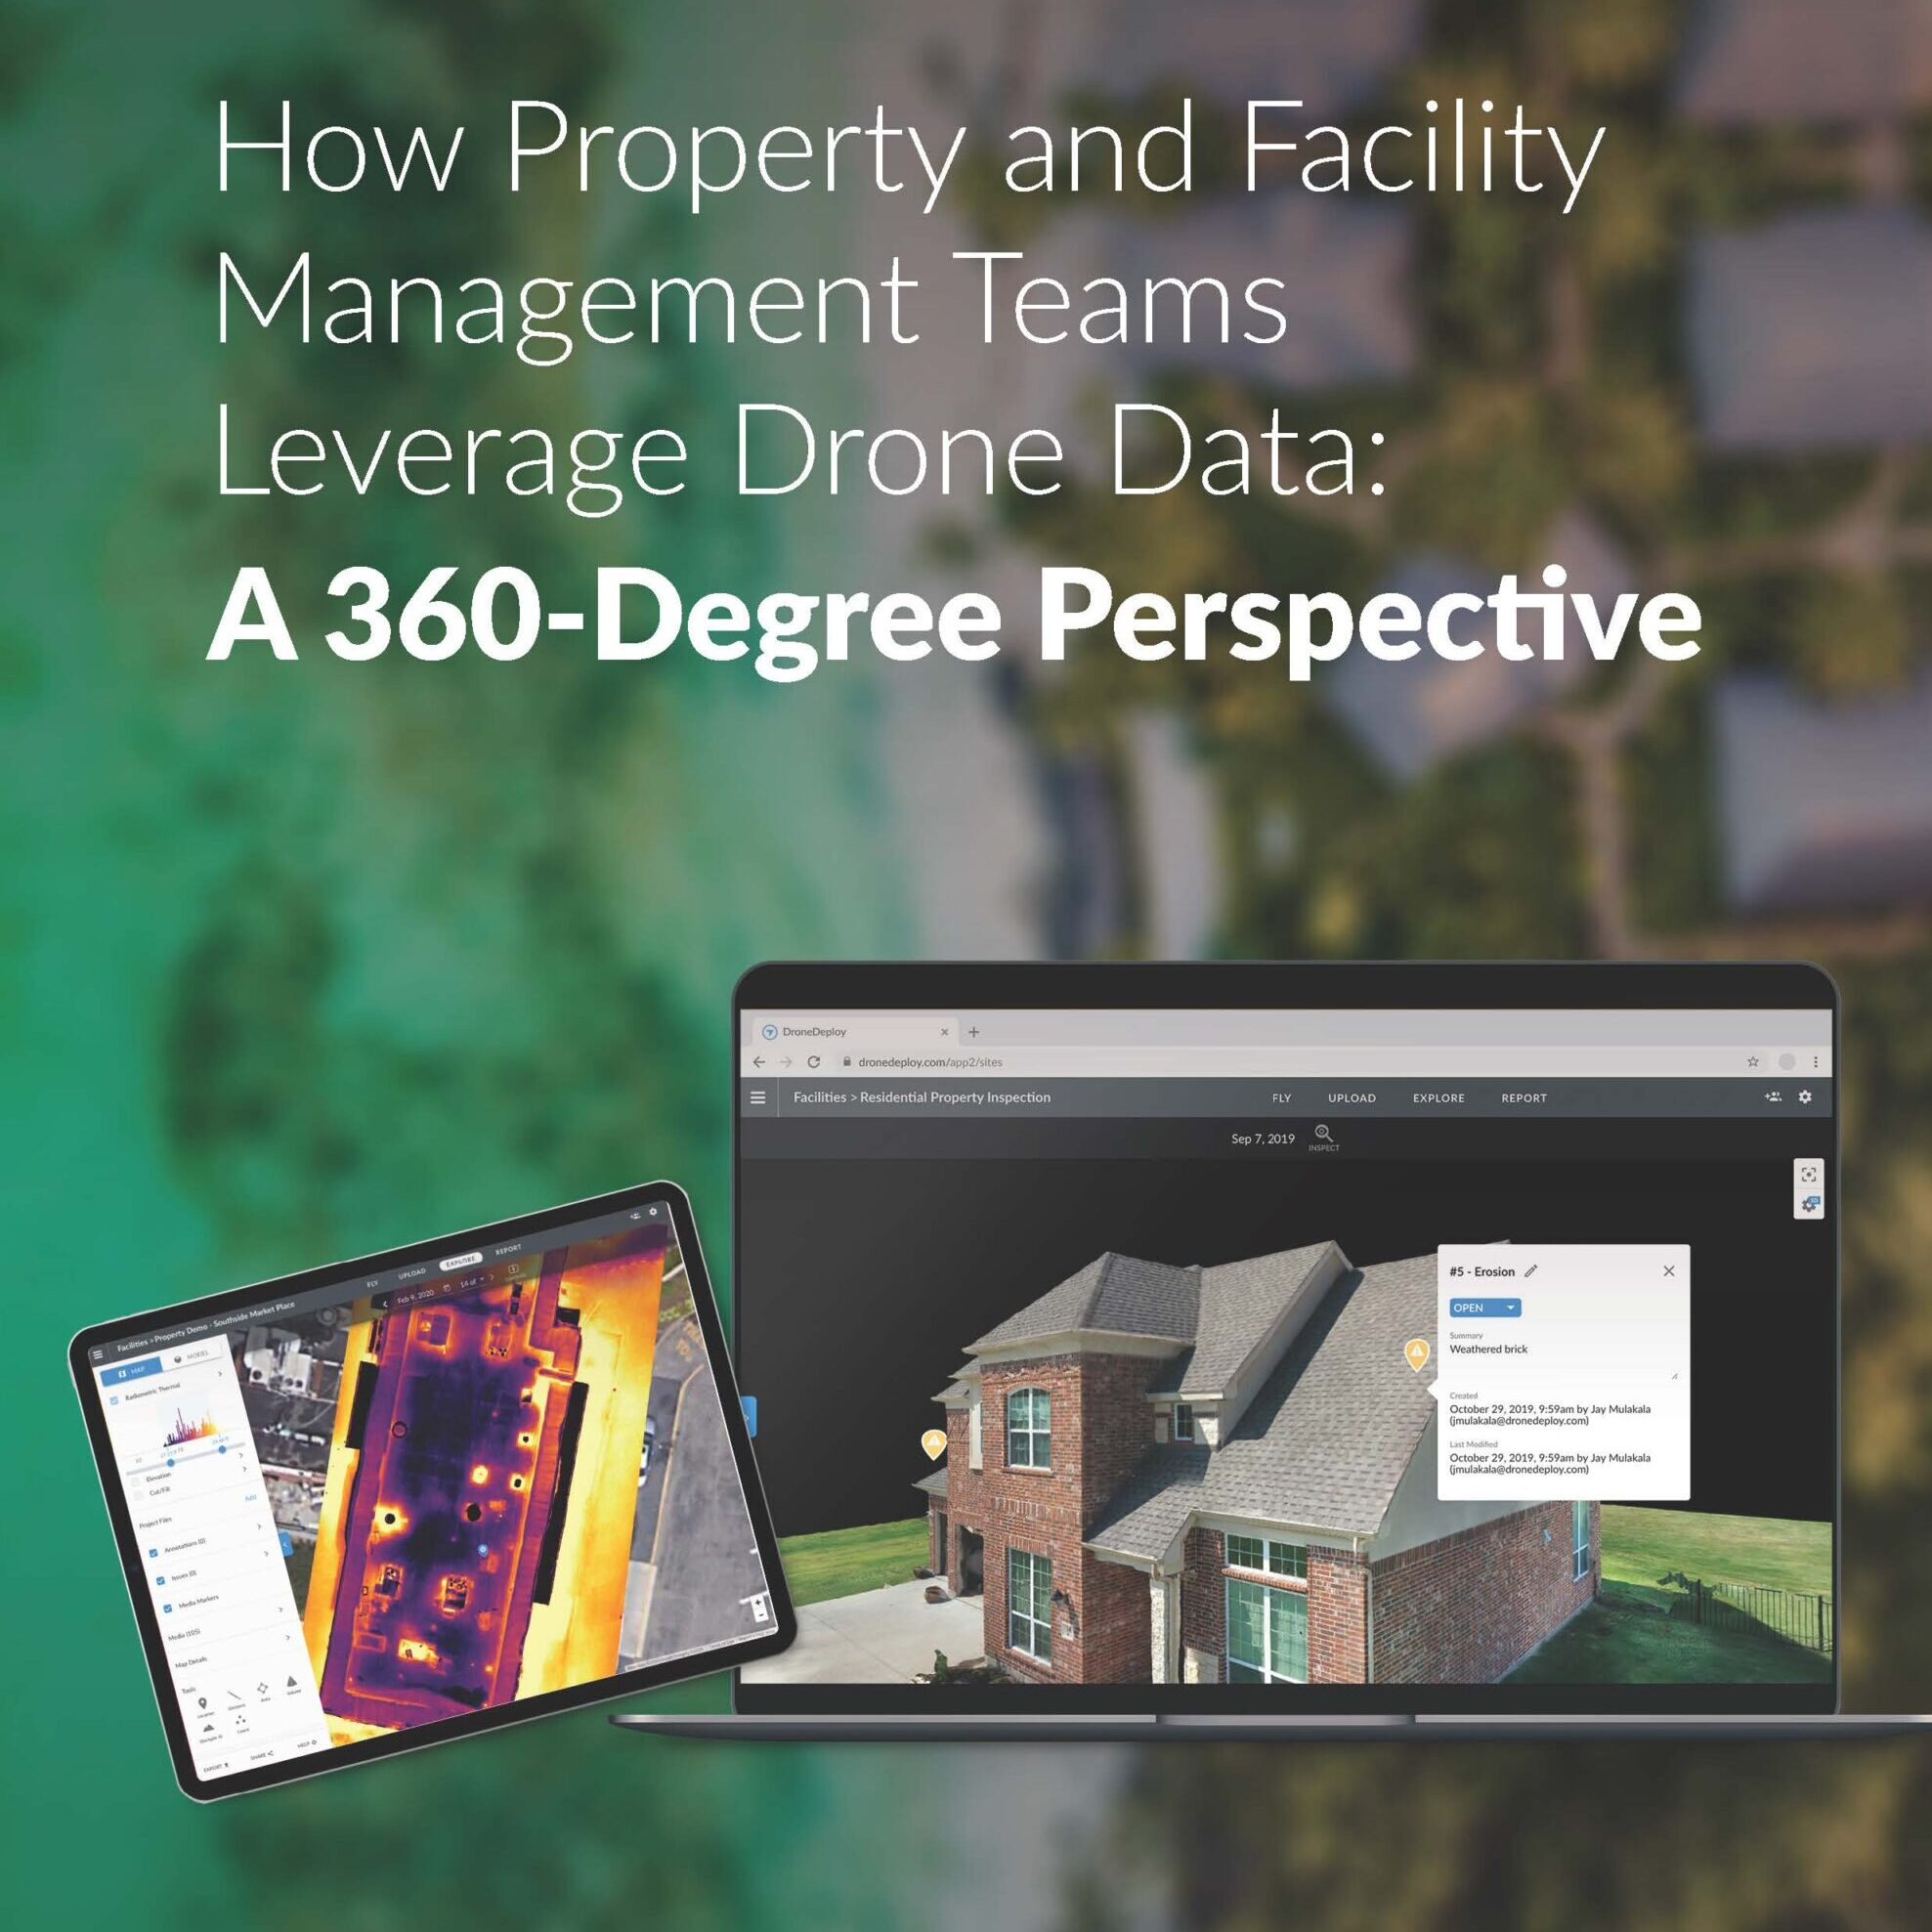 How Property and Facility Management Teams Leverage Drone Data